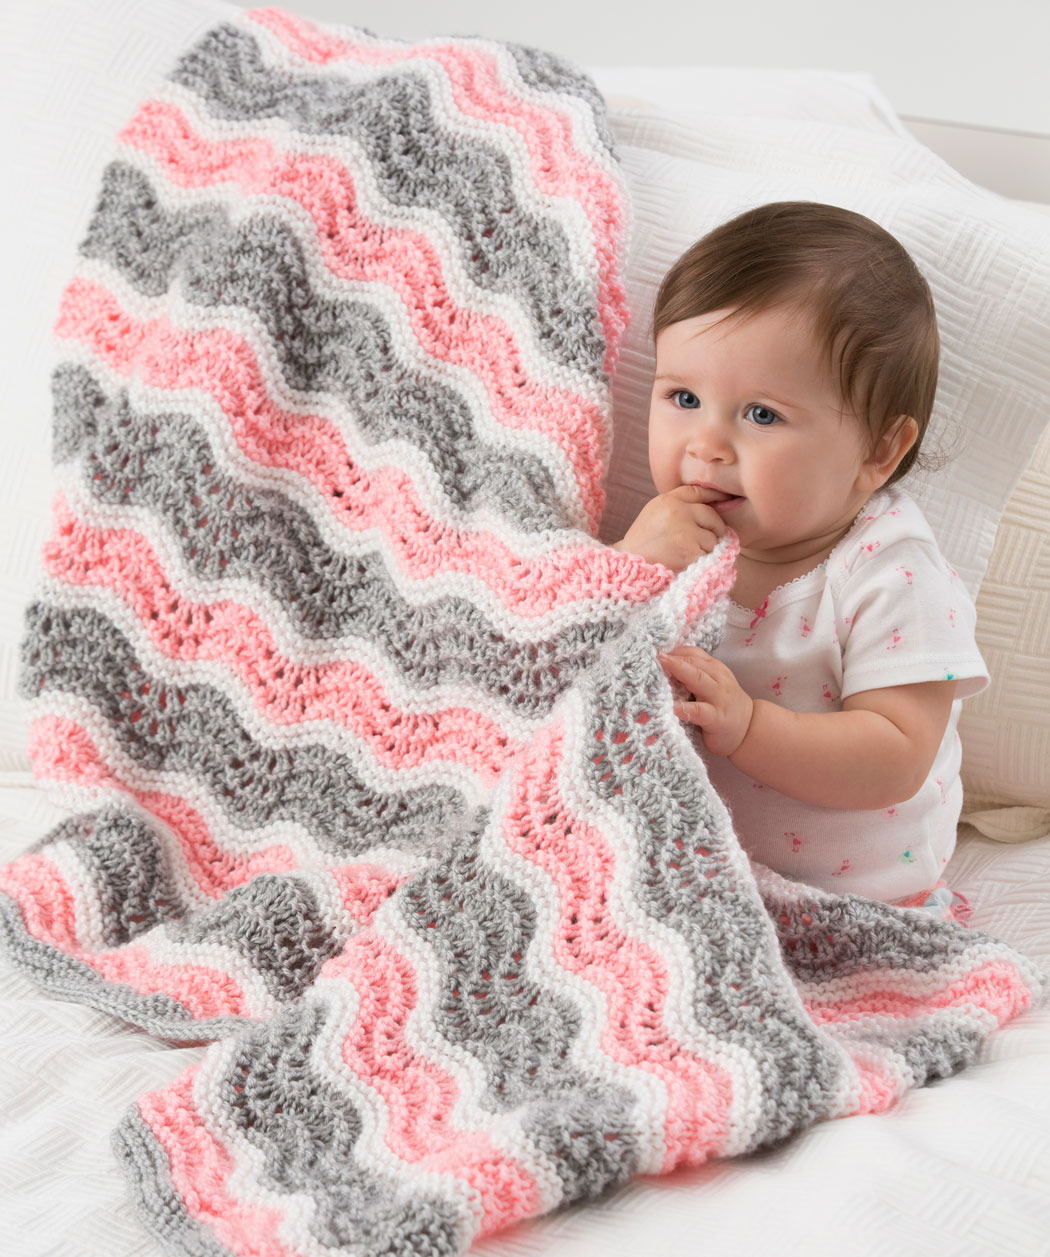 baby knitting patterns 1 xsgsyhv